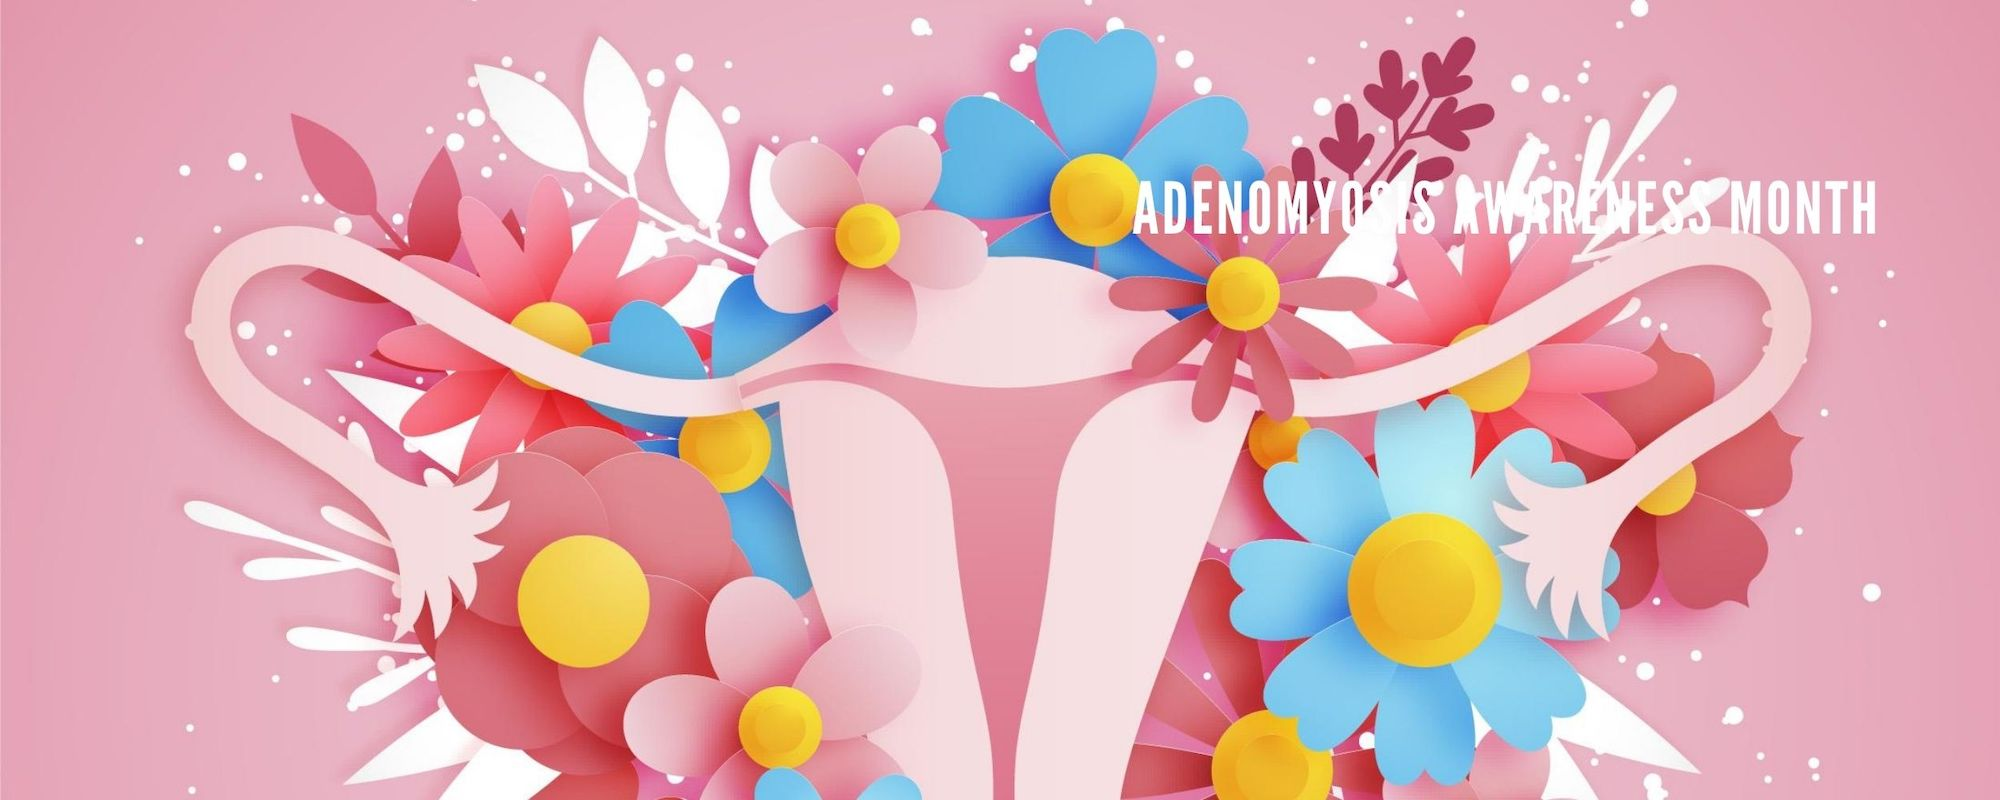 April is Adenomyosis Awareness Month